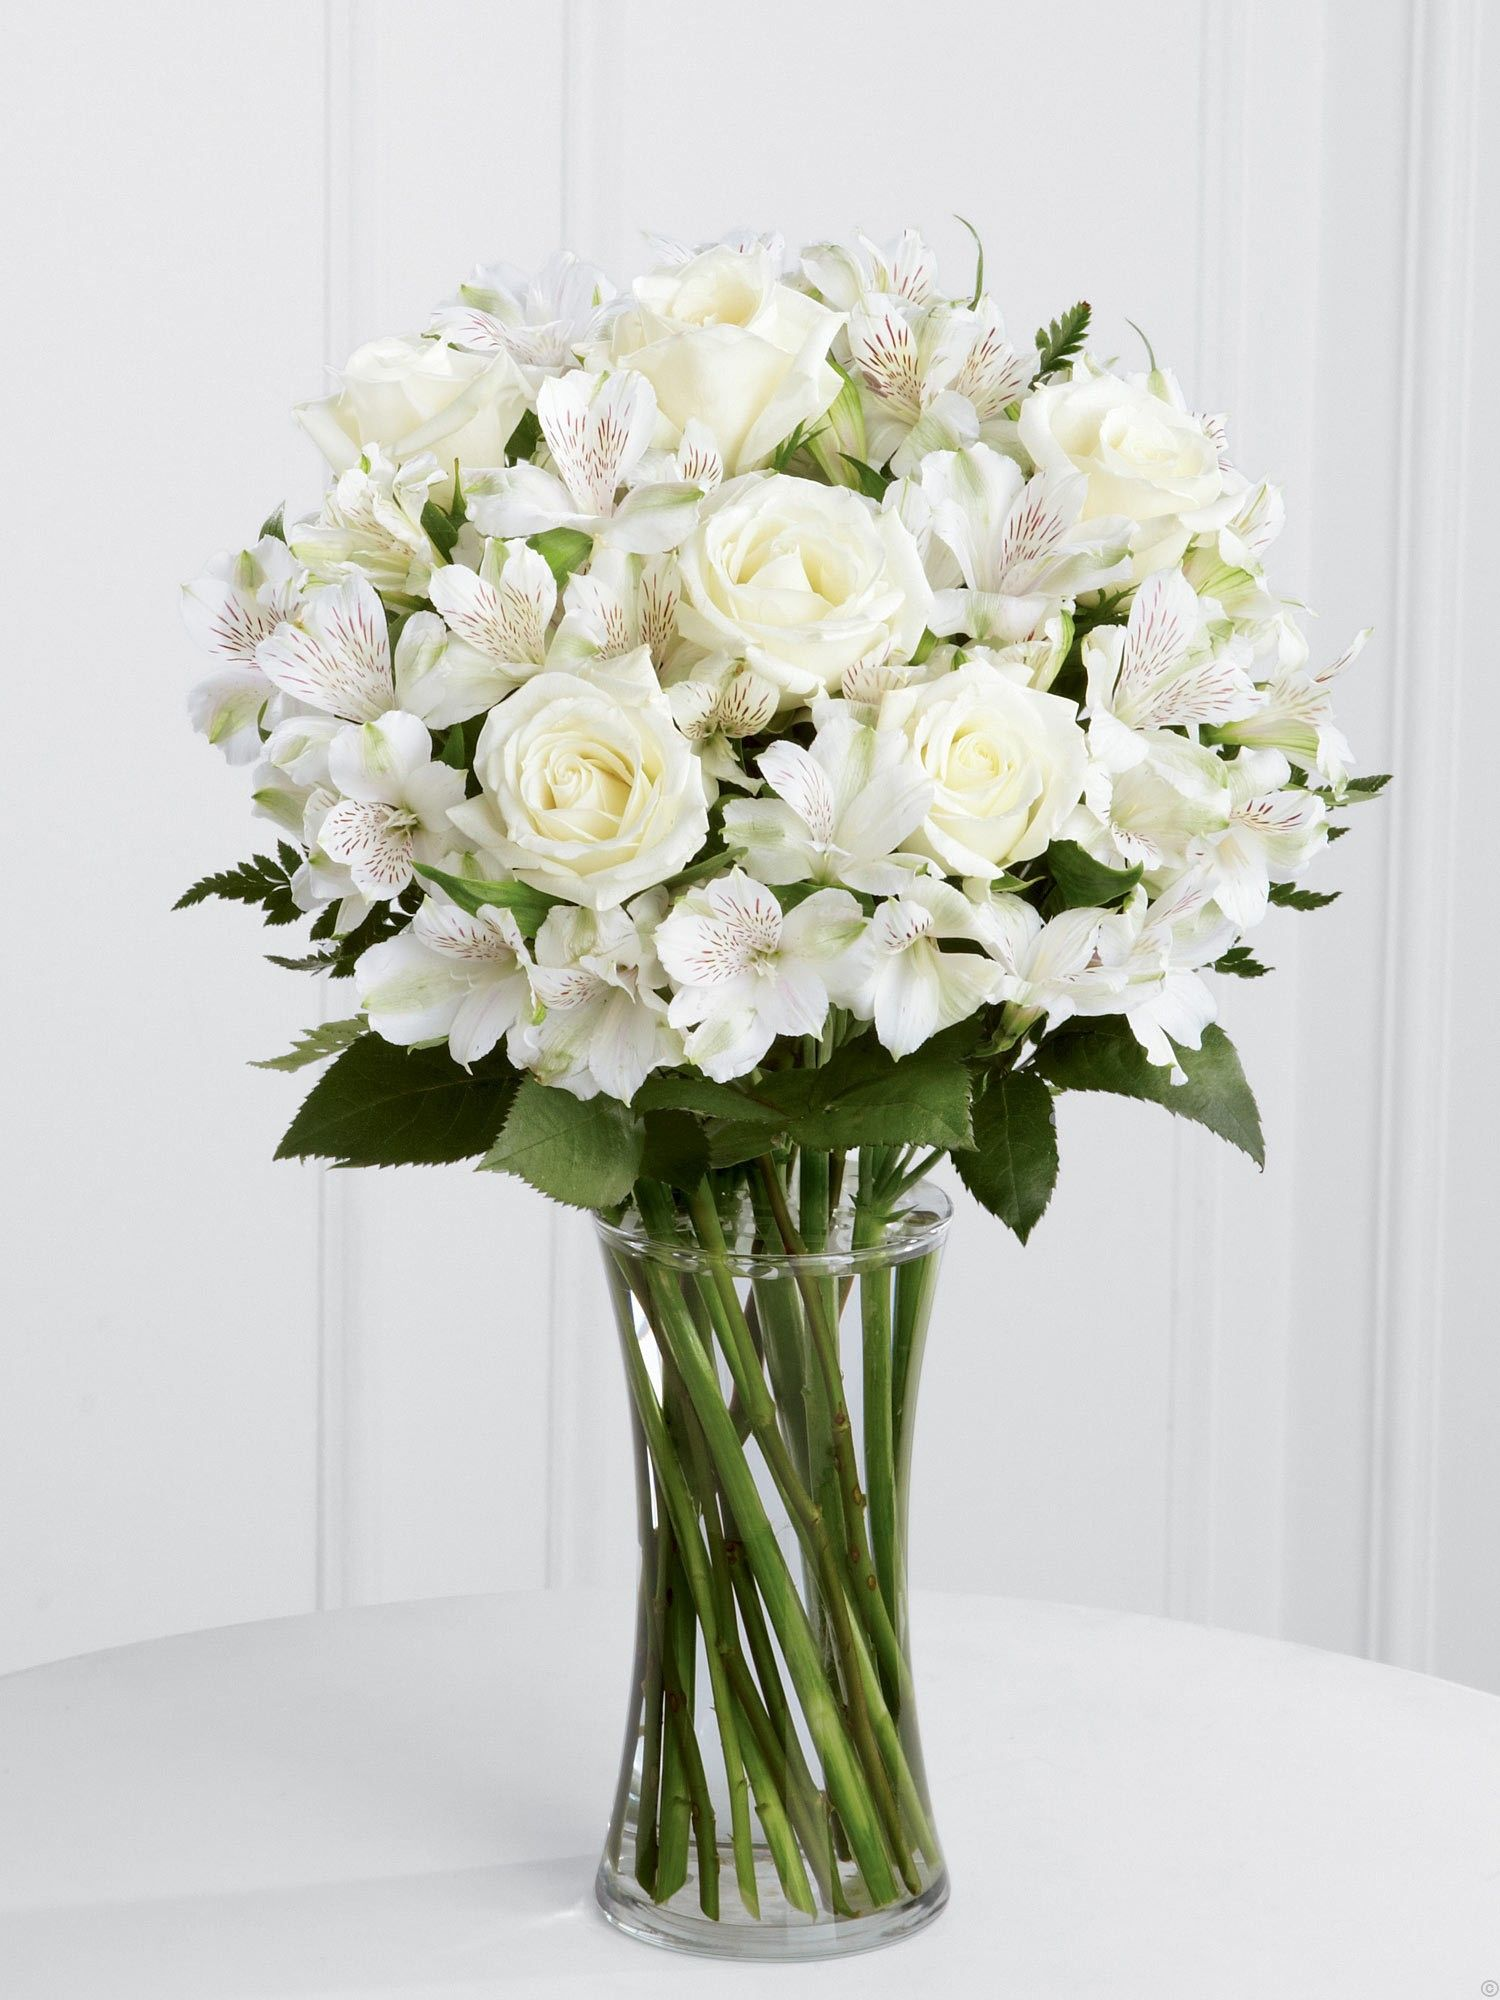 Vased White Alstroemeria And Standard Roses Alstroemeria Bridal Bouquet Purvian Lilies Are Available In Pin Funeral Flowers Flower Arrangements White Roses